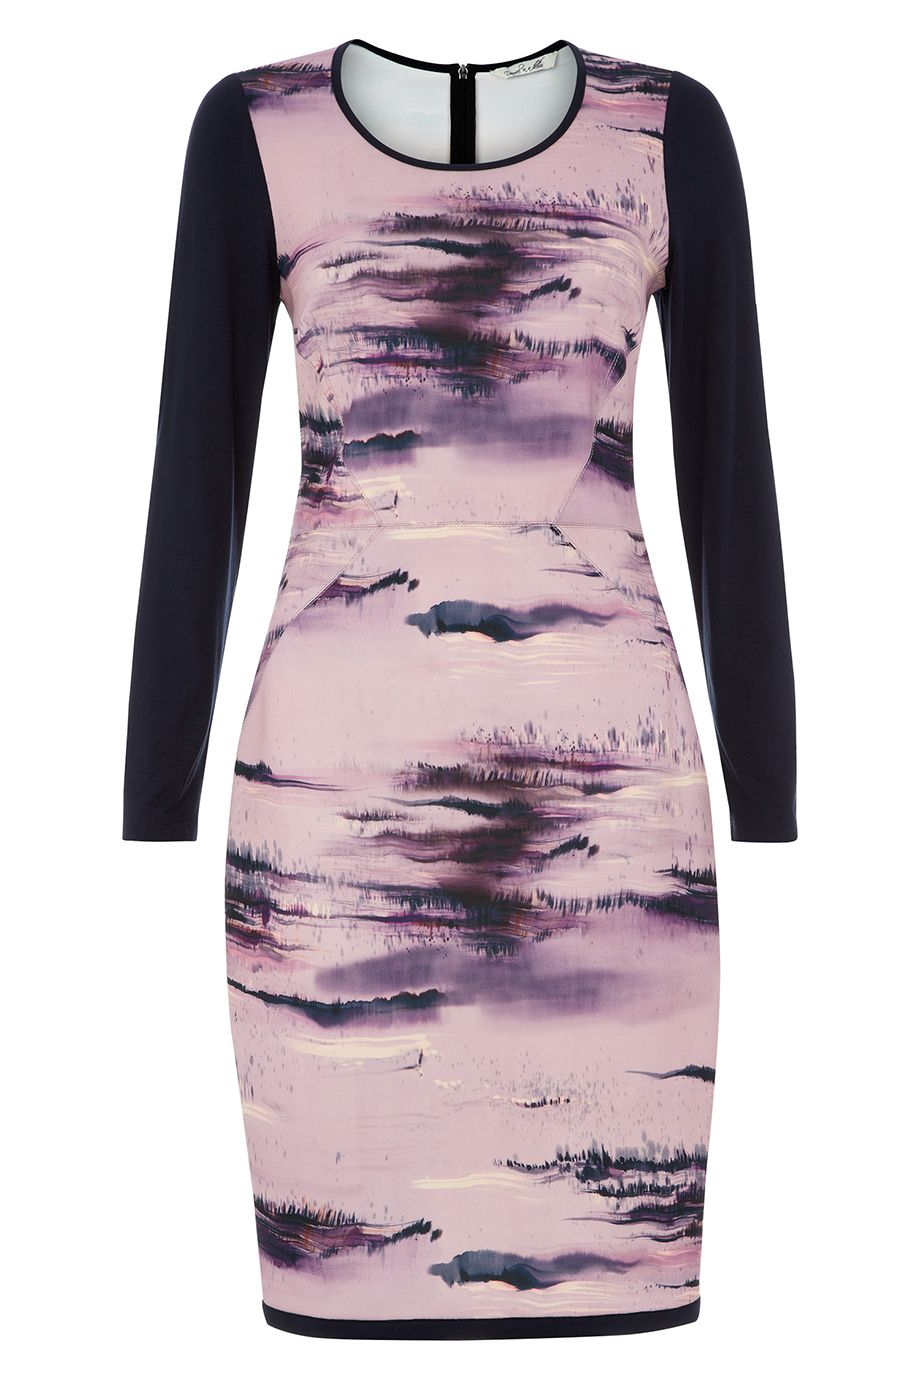 Damsel in a Dress Damson Dusk Print Dress, Multi-Coloured